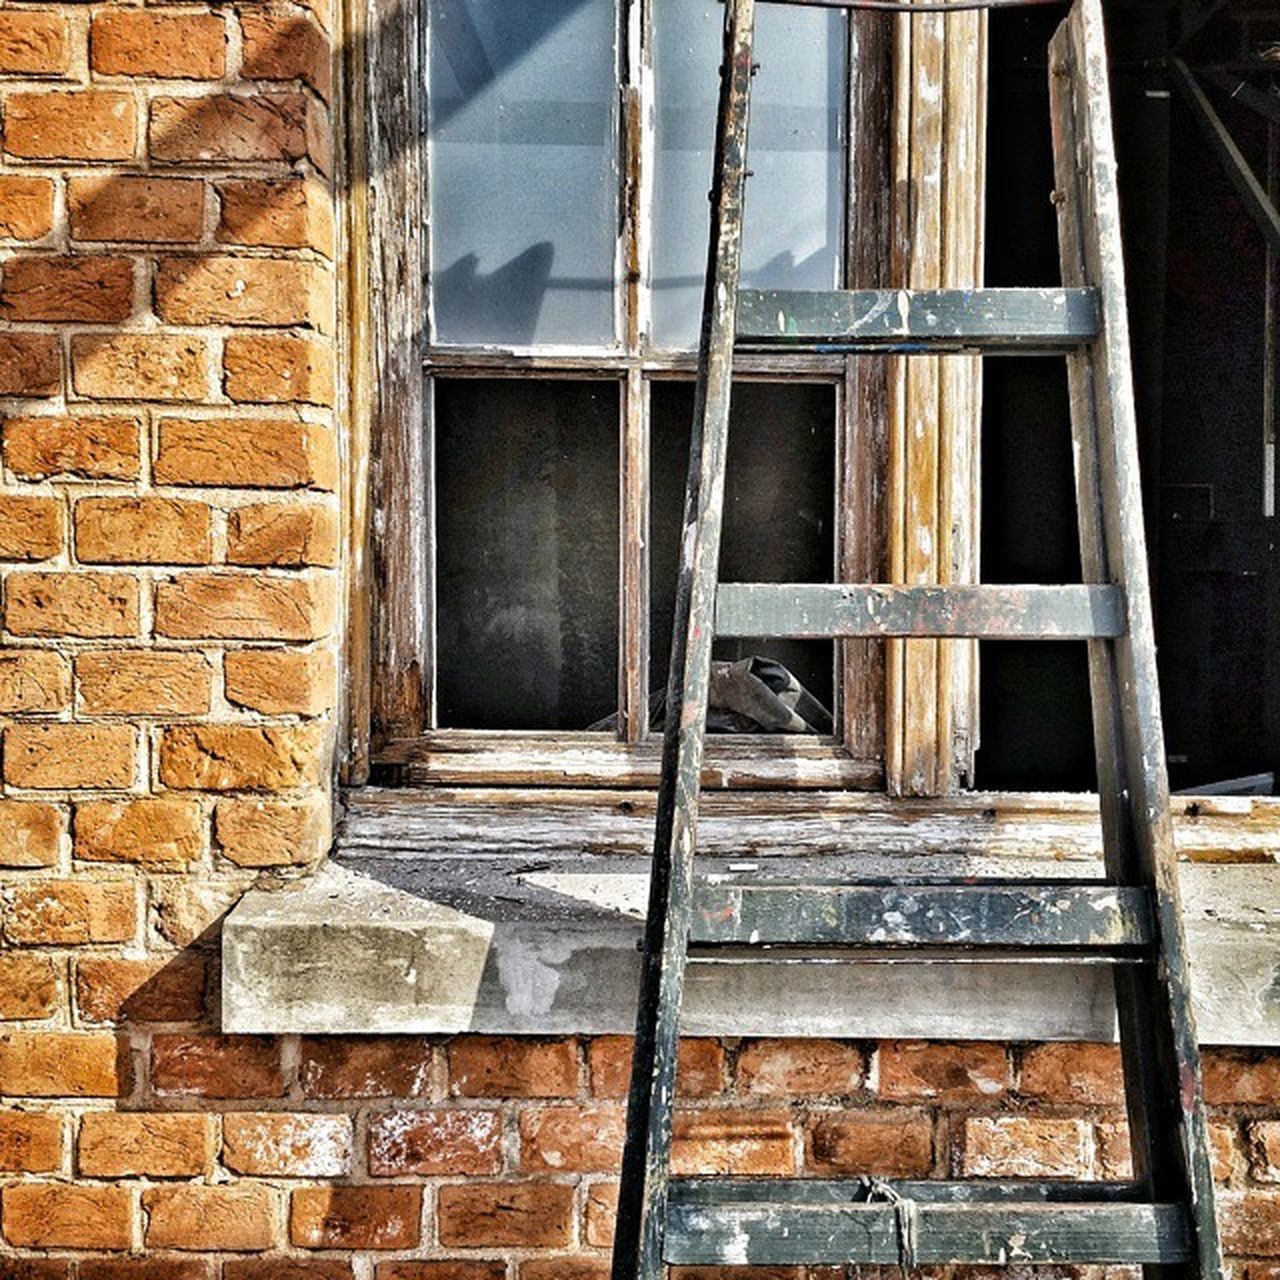 architecture, brick wall, window, day, built structure, no people, building exterior, outdoors, close-up